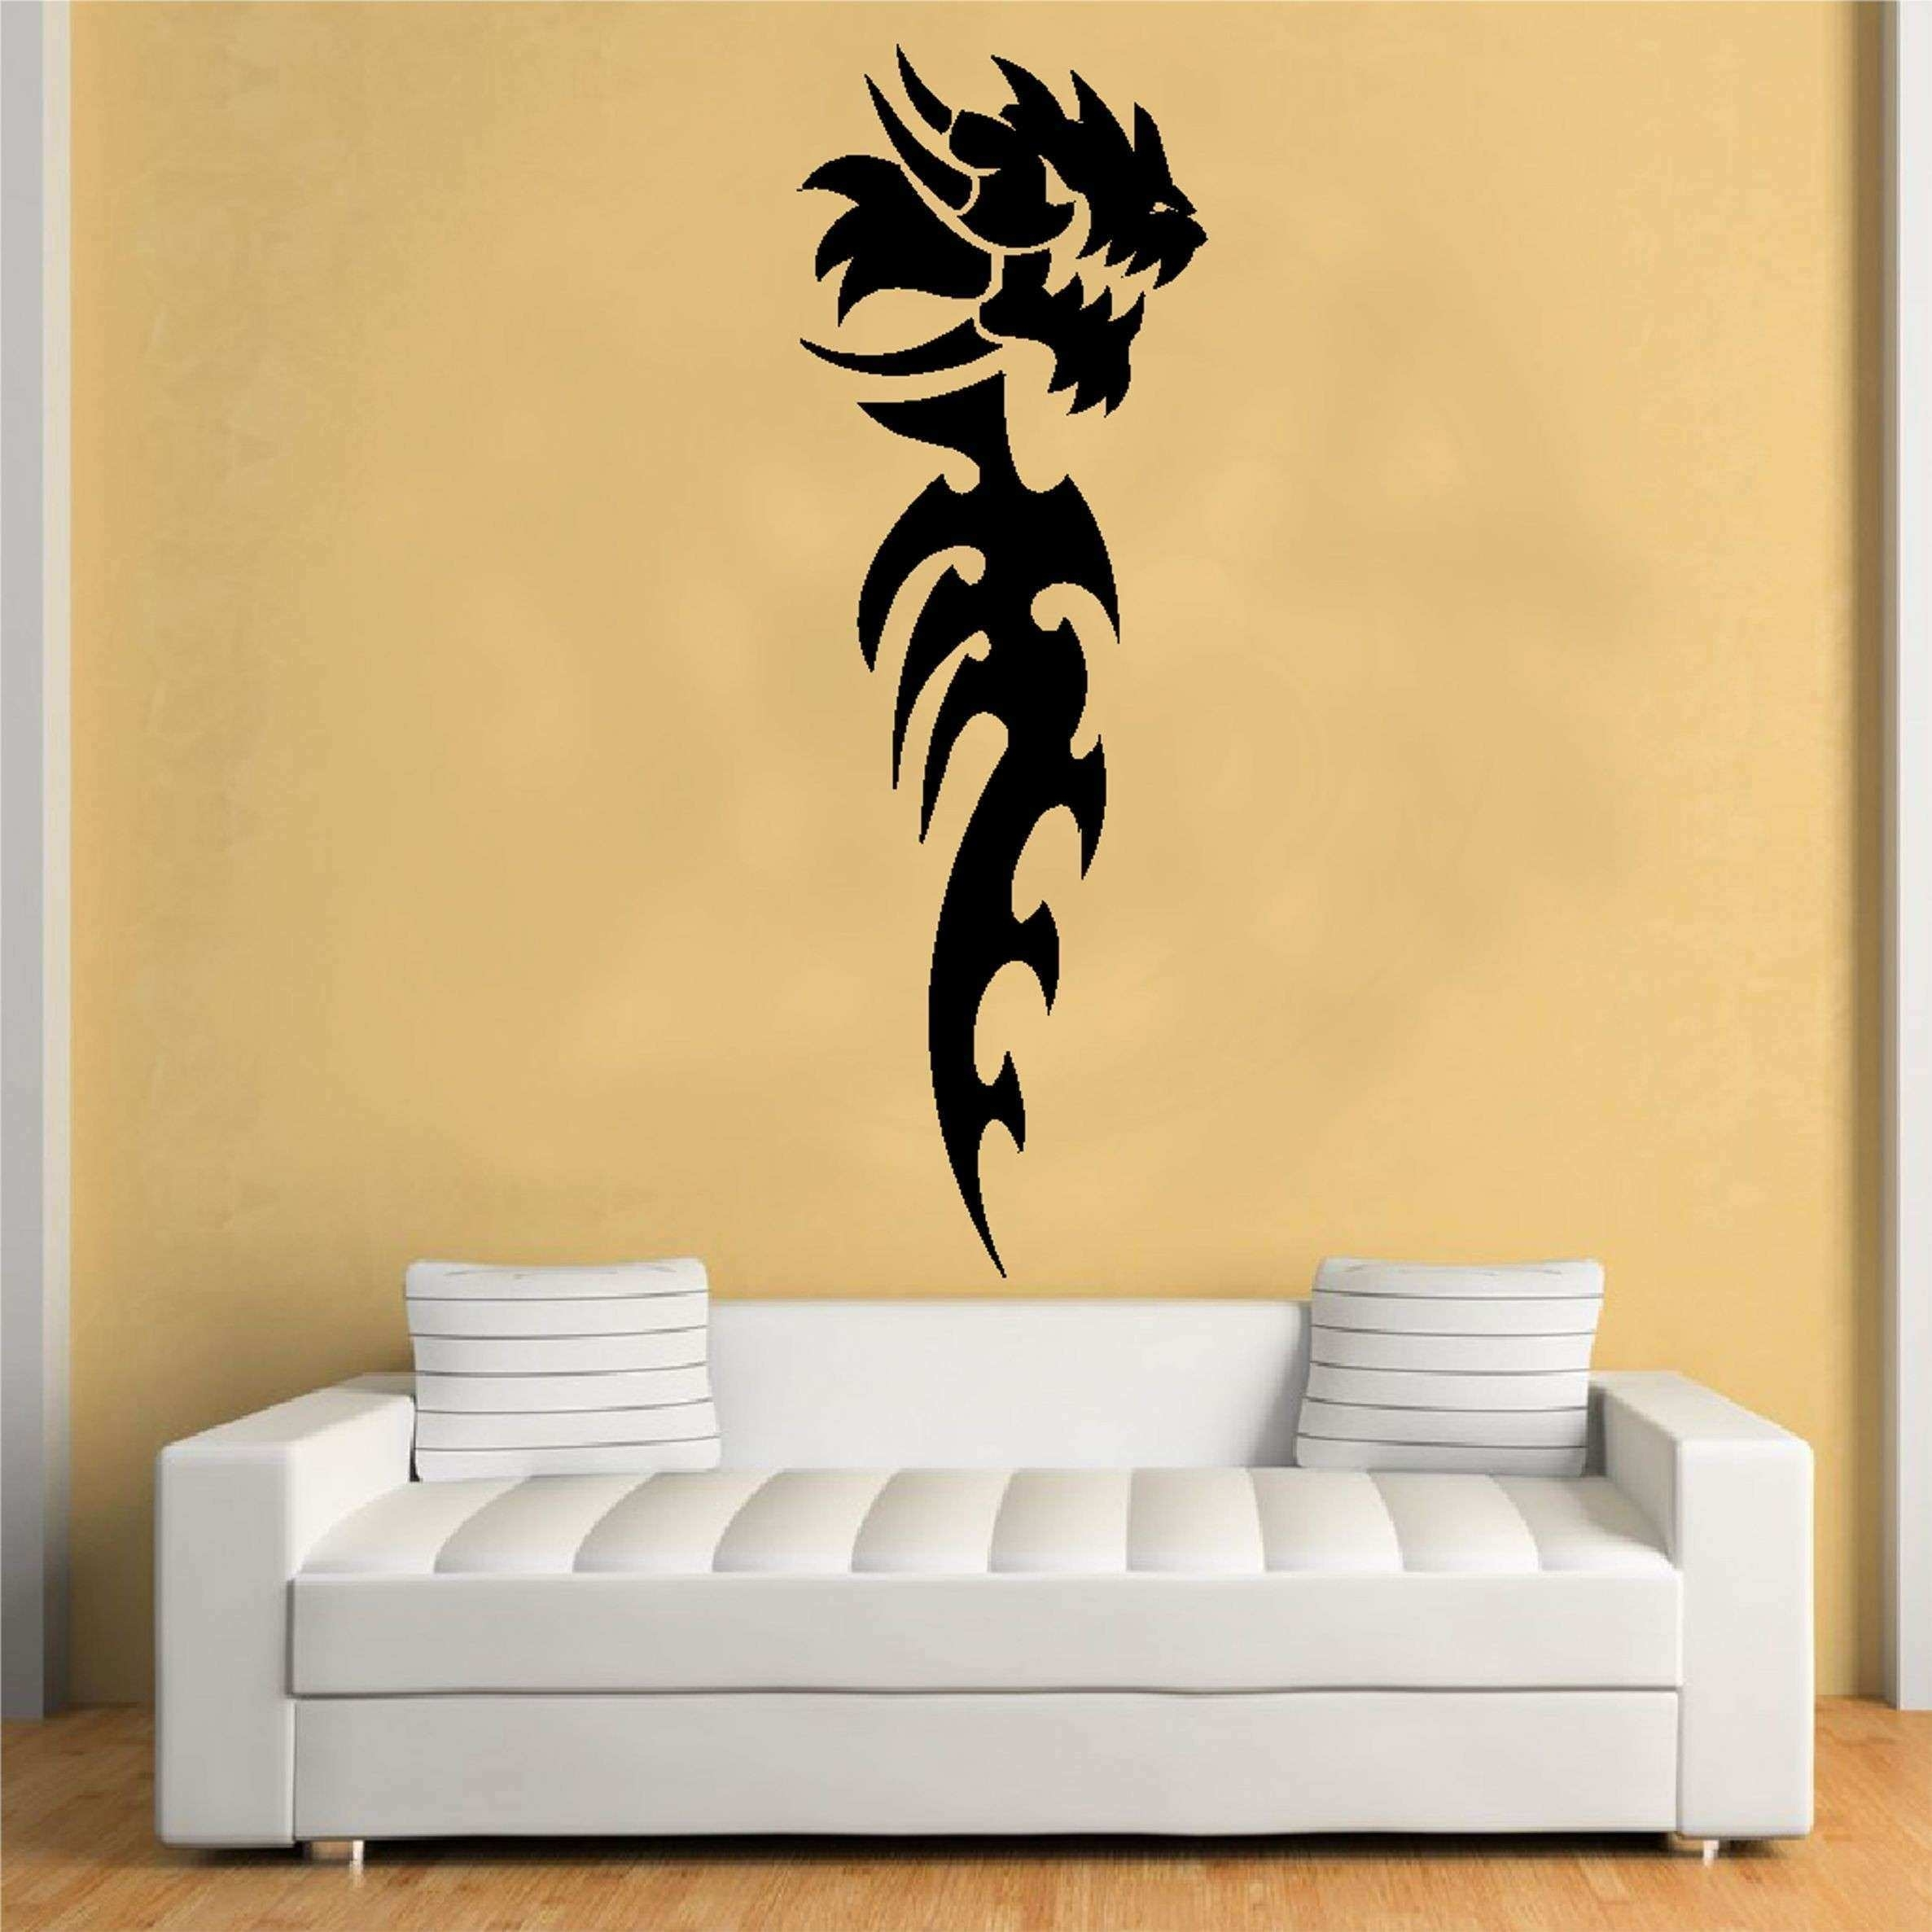 Paw Print Stencil Wall Painting Luxury Unusual Animal Wall Decor Intended For Stencil Wall Art (Photo 8 of 20)